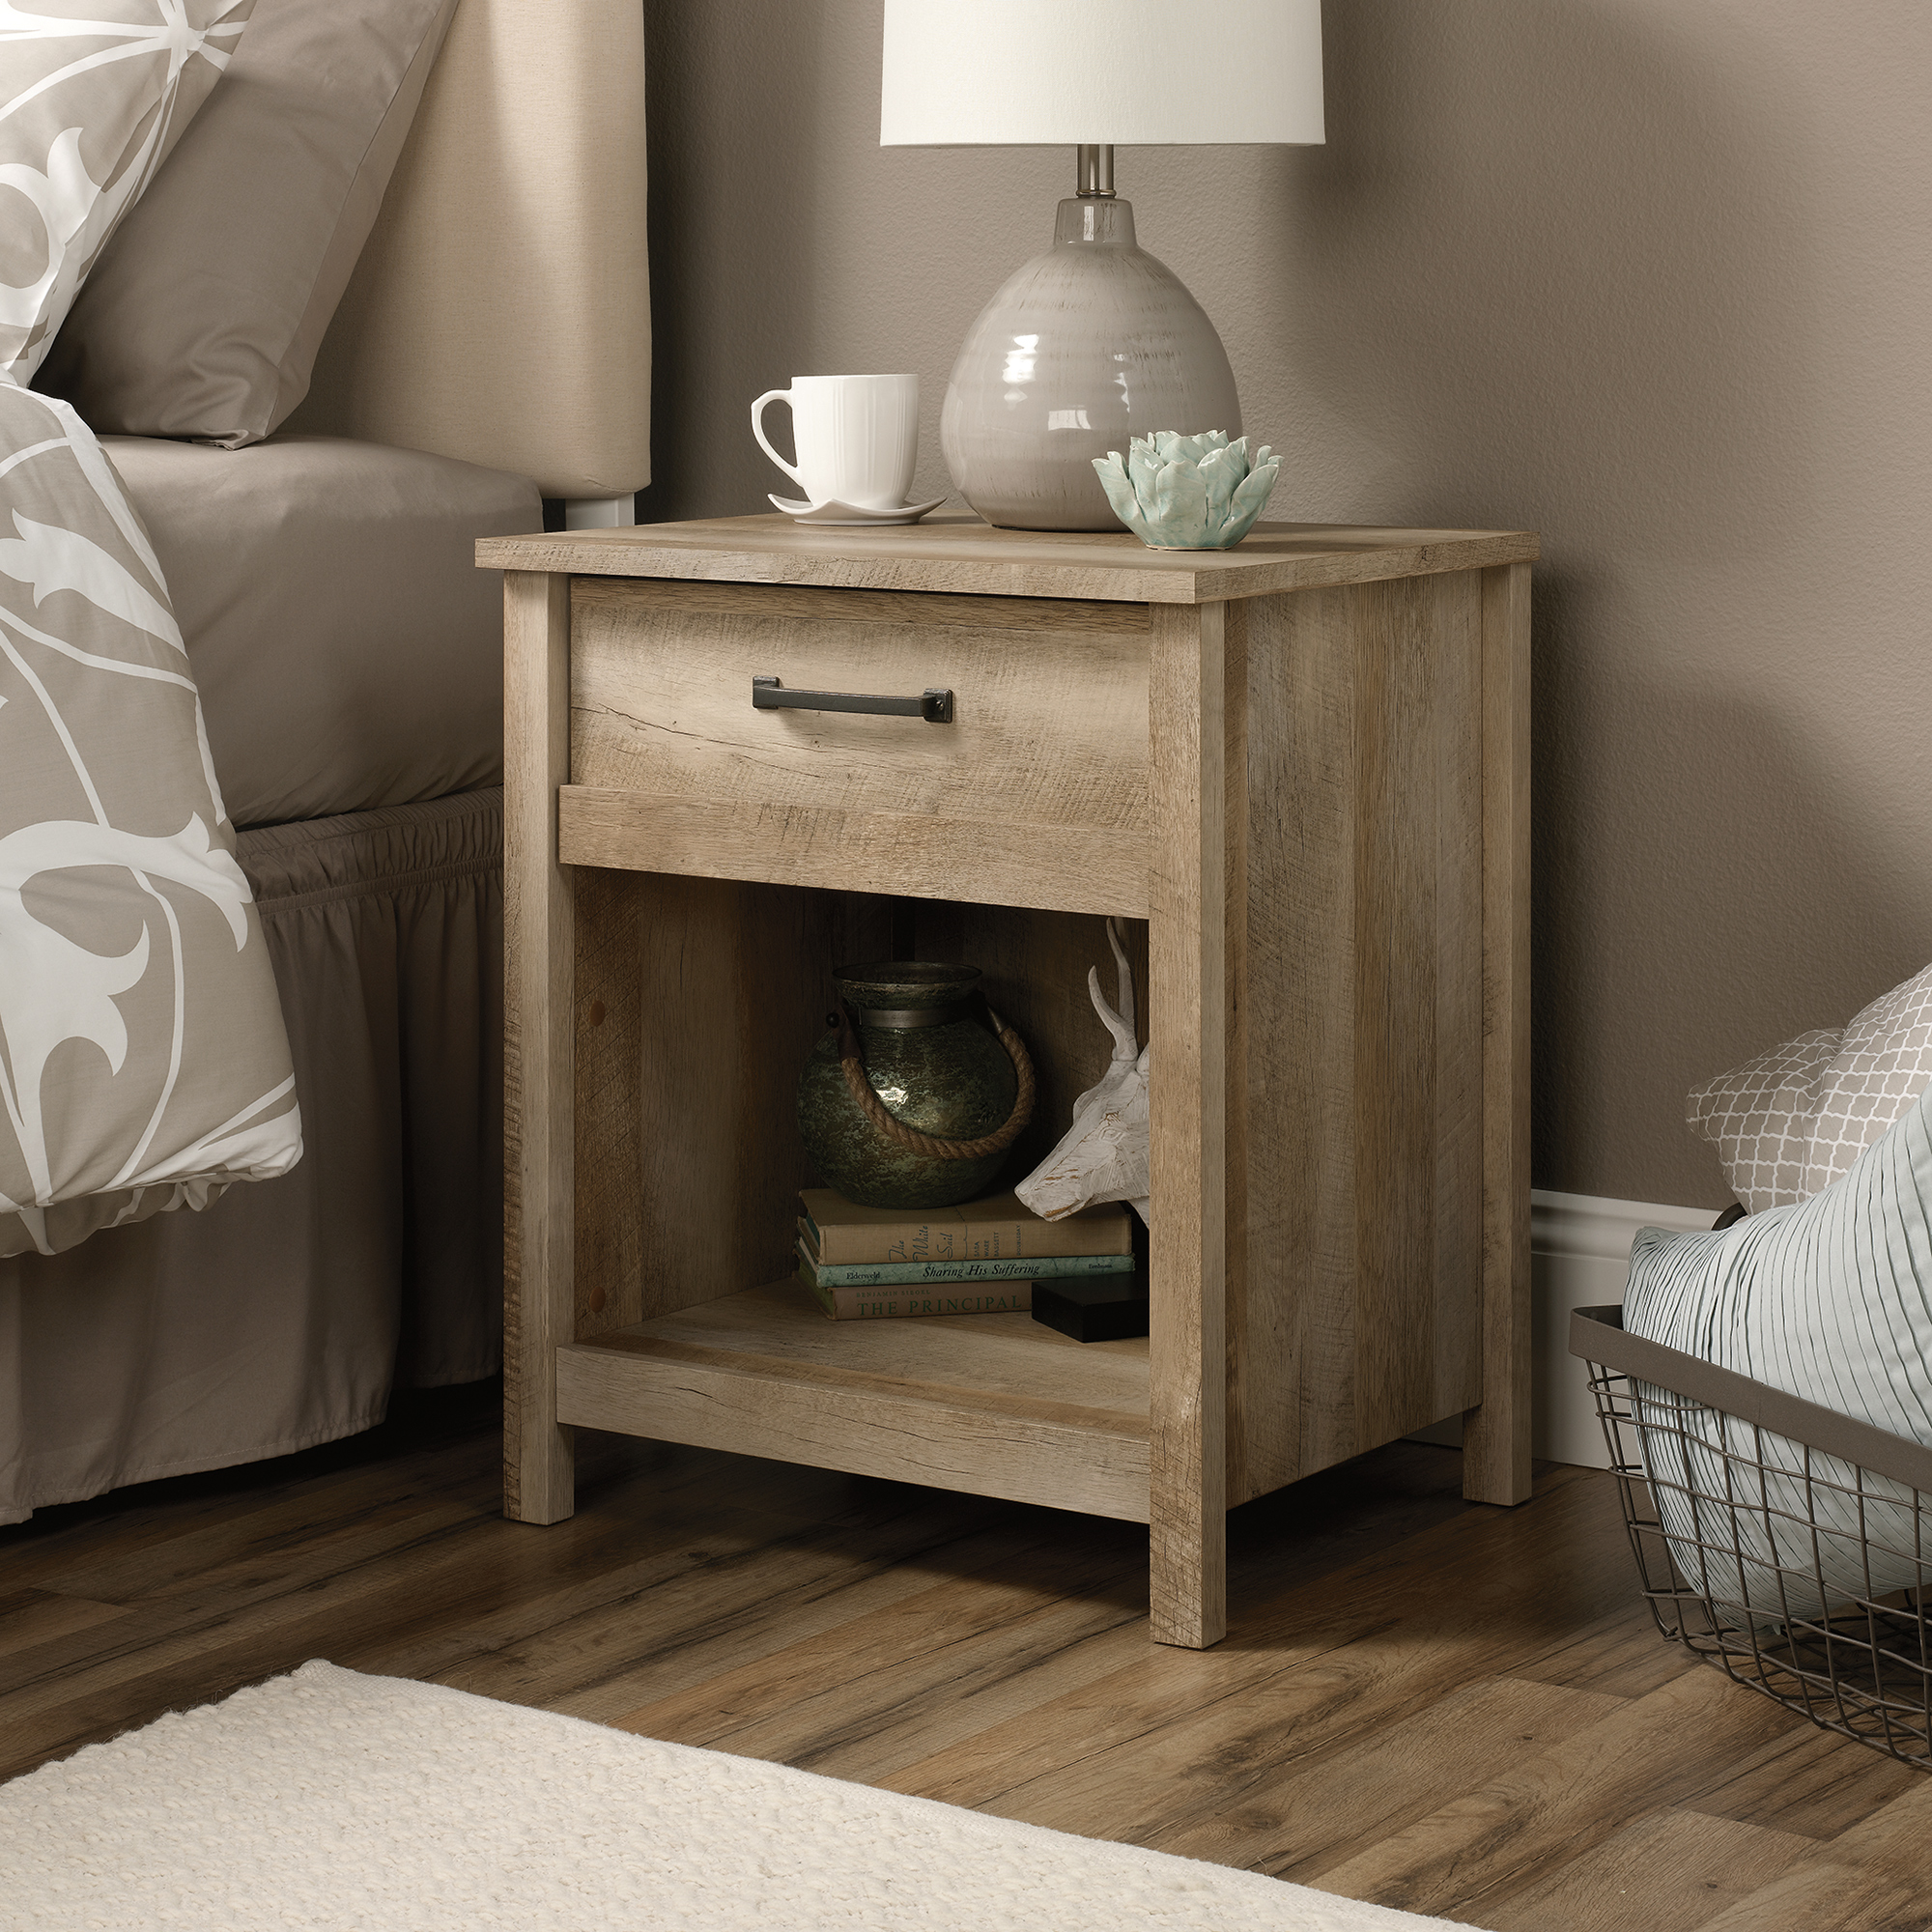 Inspire Your Home with Charming Rustic Nightstand: Miraculous Houzz Bedside Tables | Dazzling Rustic Nightstand